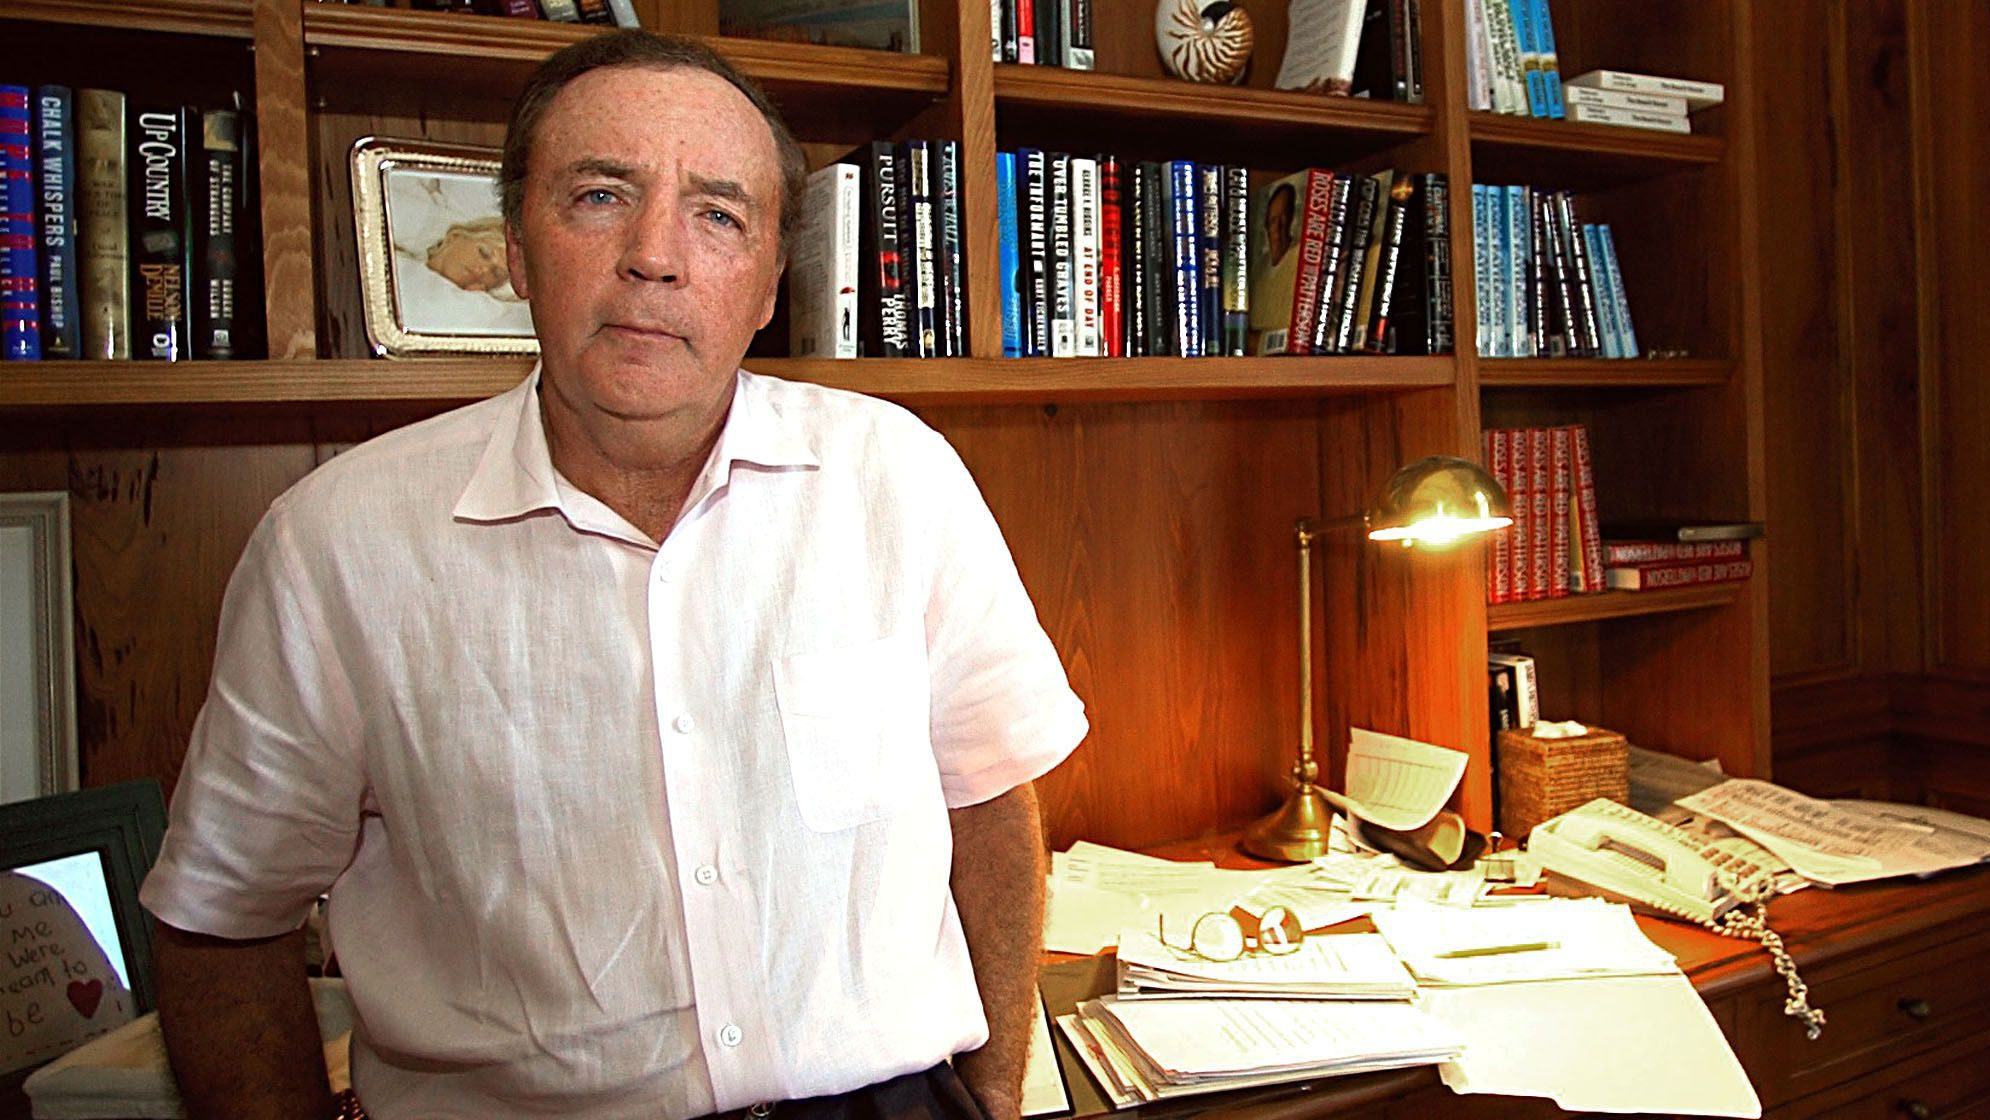 """FILE- This Feb. 28, 2003 file photo shows author James Patterson, of Palm Beach Fla, posing in his study.  Patterson's latest best-seller, """"The Angel Experiment,"""" is a little different from his usual hits. The novel isn't new; it came out four years ago. Its sales aren't happening at bookstores, but mostly on the Kindle store at Amazon.com. And the price is low even for an old release: $0.00 (AP Photo/ Steve Mitchell)"""